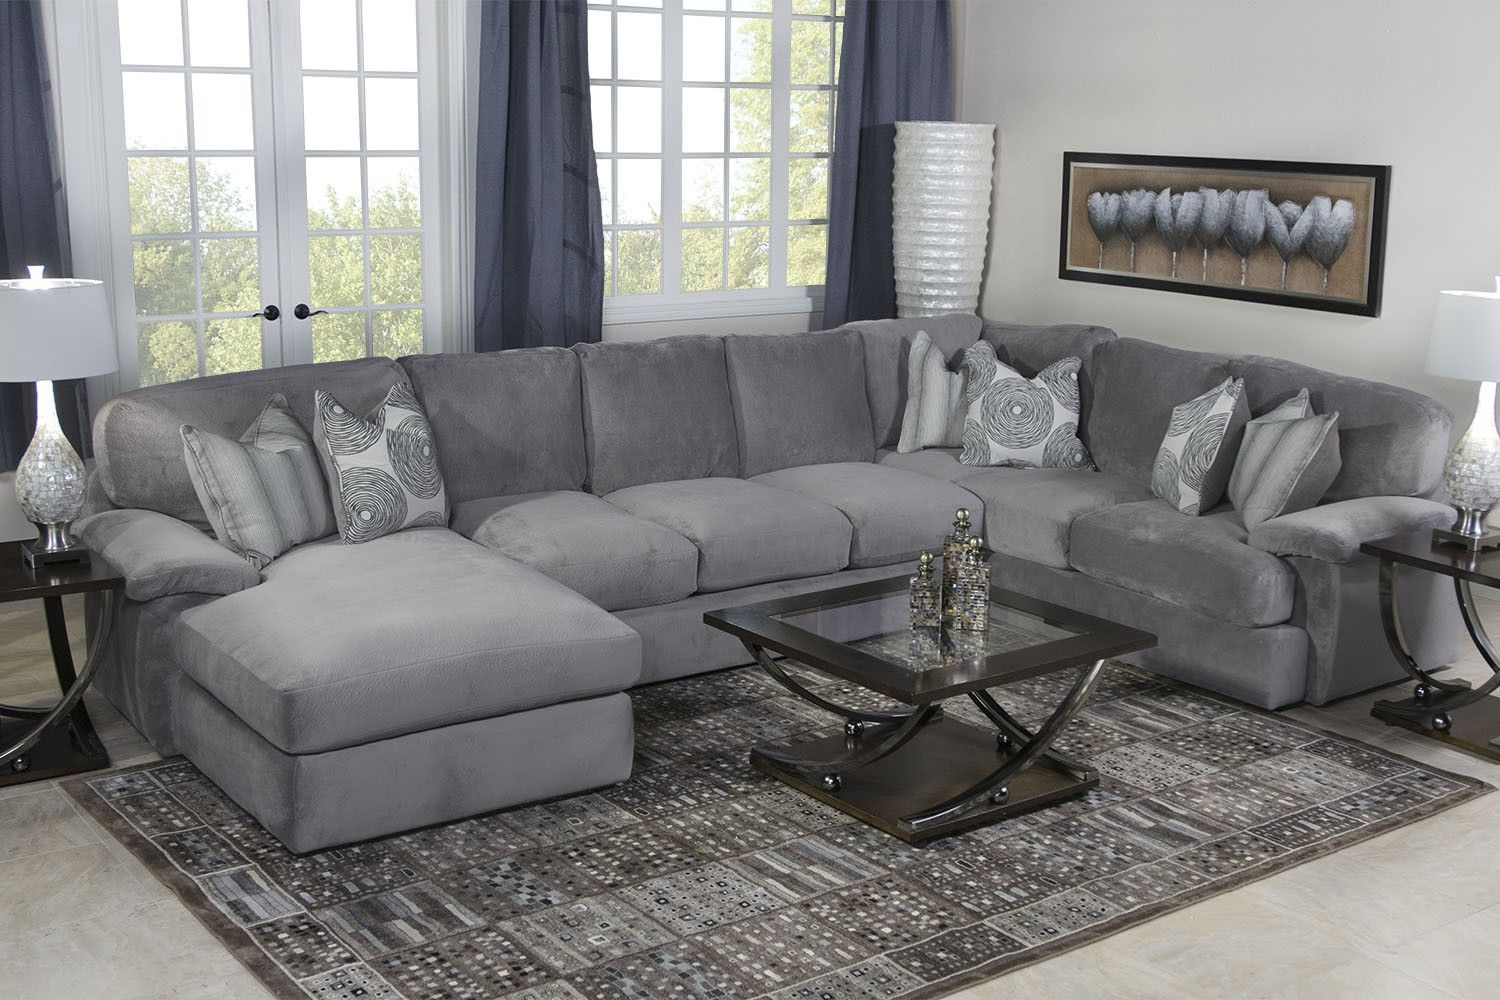 Key West Sectional Living Room in Gray